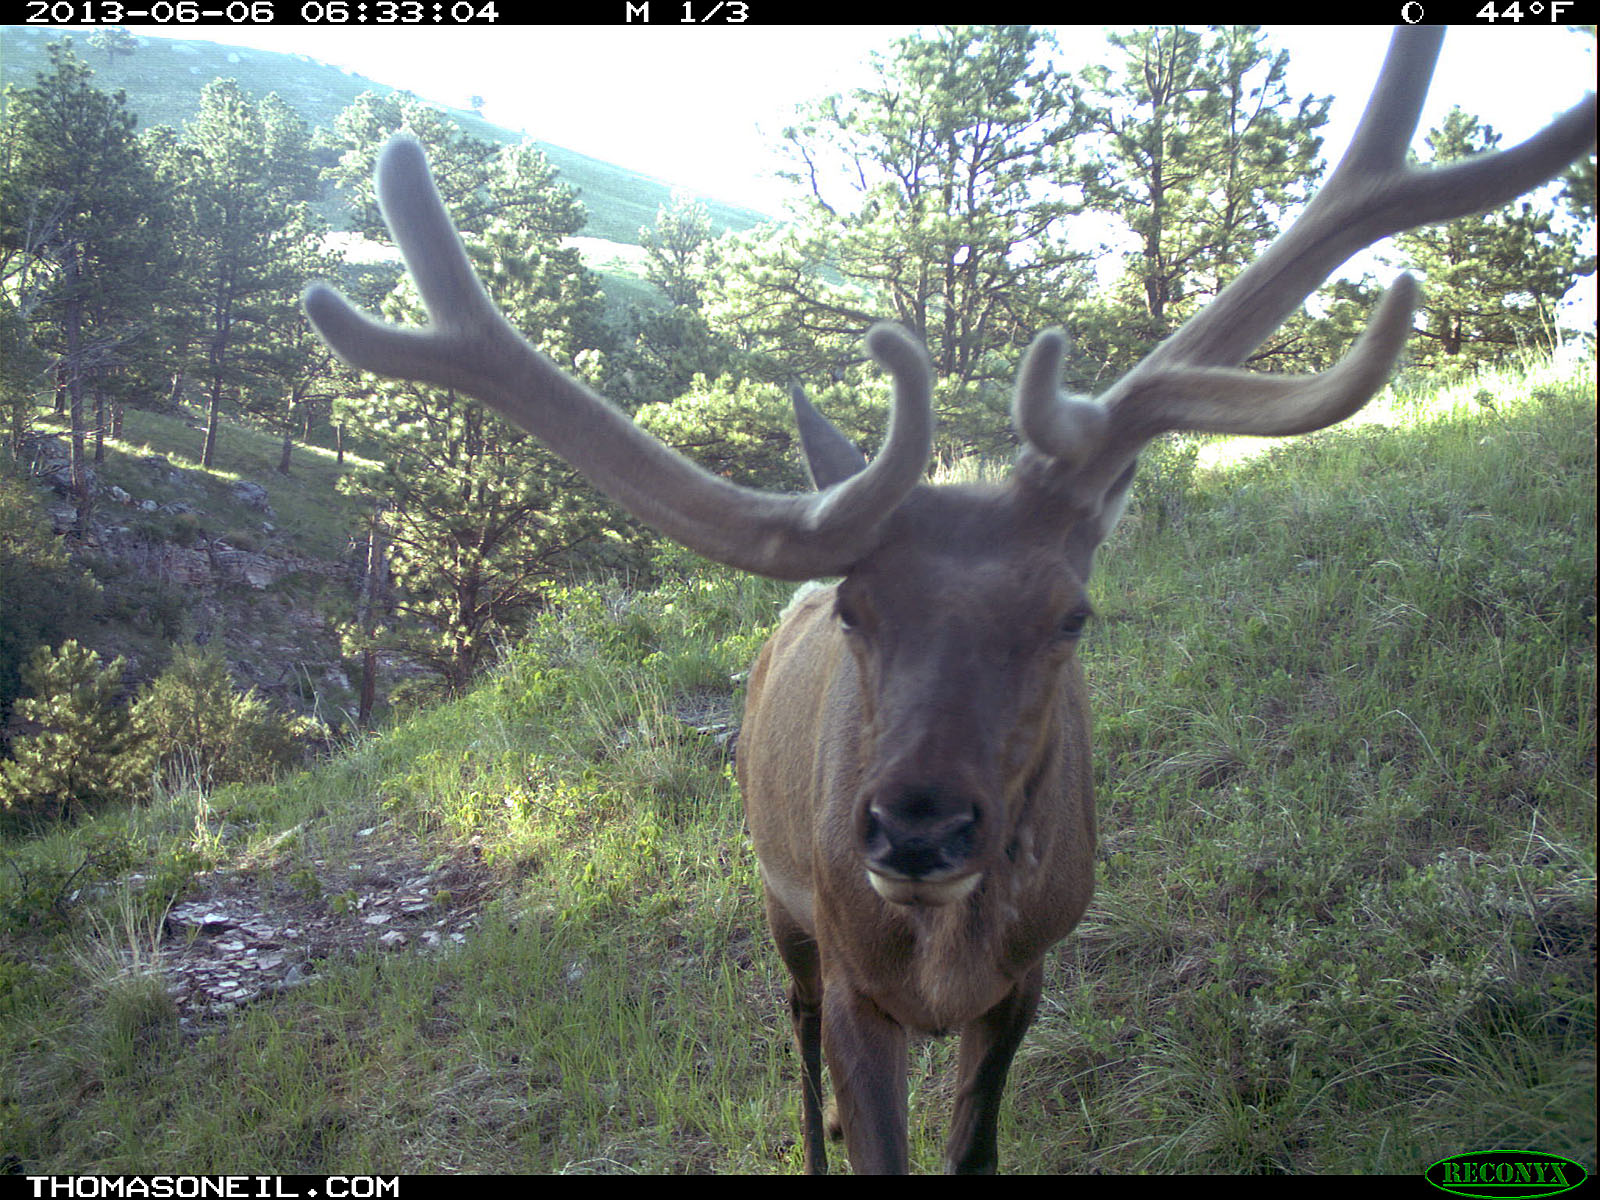 Lopsided antlers, elk on trail camera, Wind Cave National Park, South Dakota, June 6, 2013.  Click for next photo.